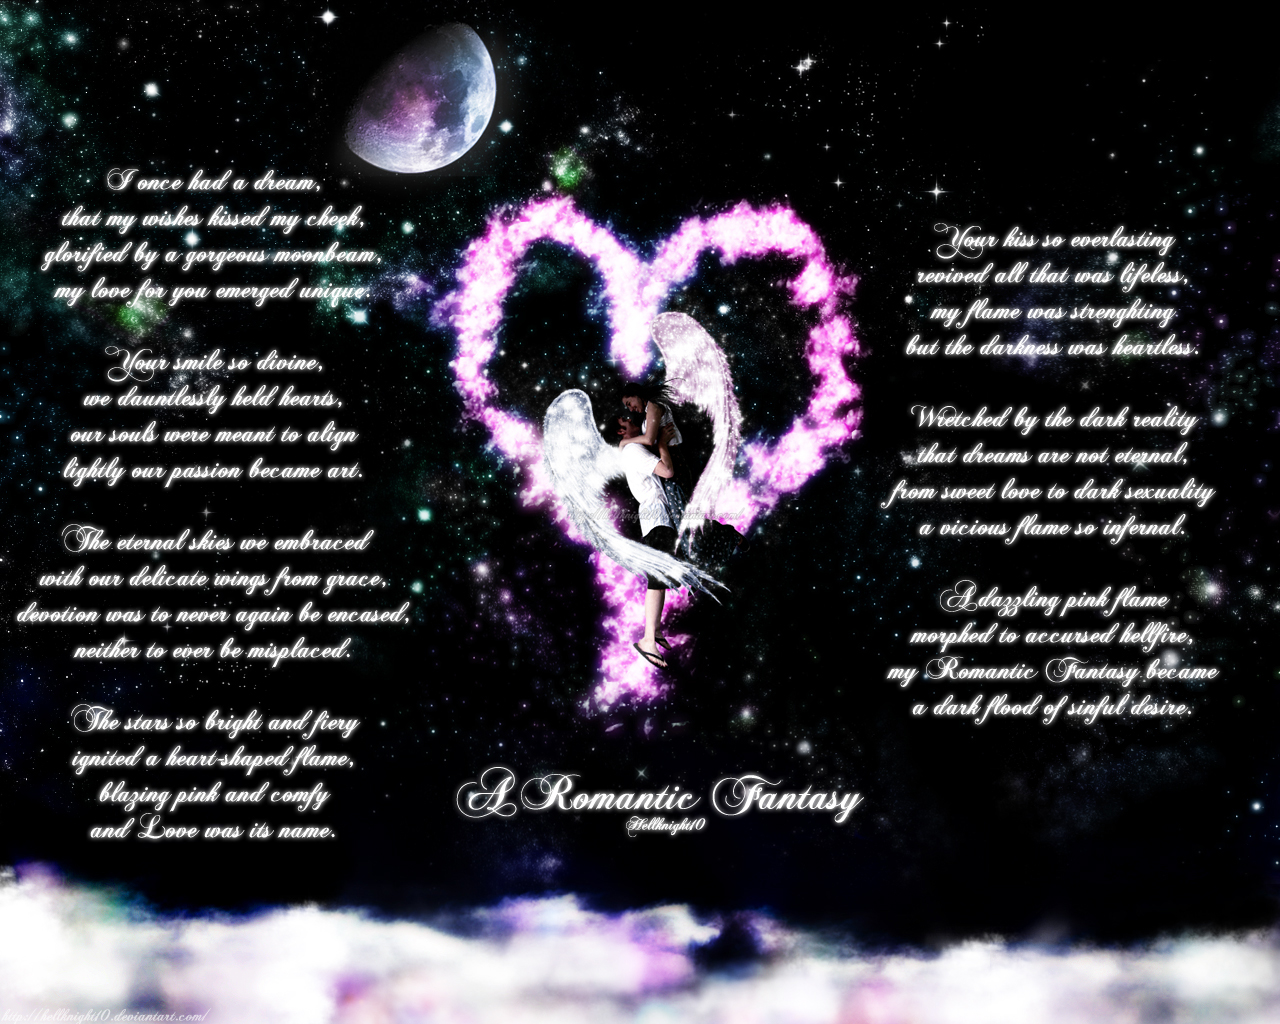 A Romantic Fantasy Poem By Hellknight10 On Deviantart